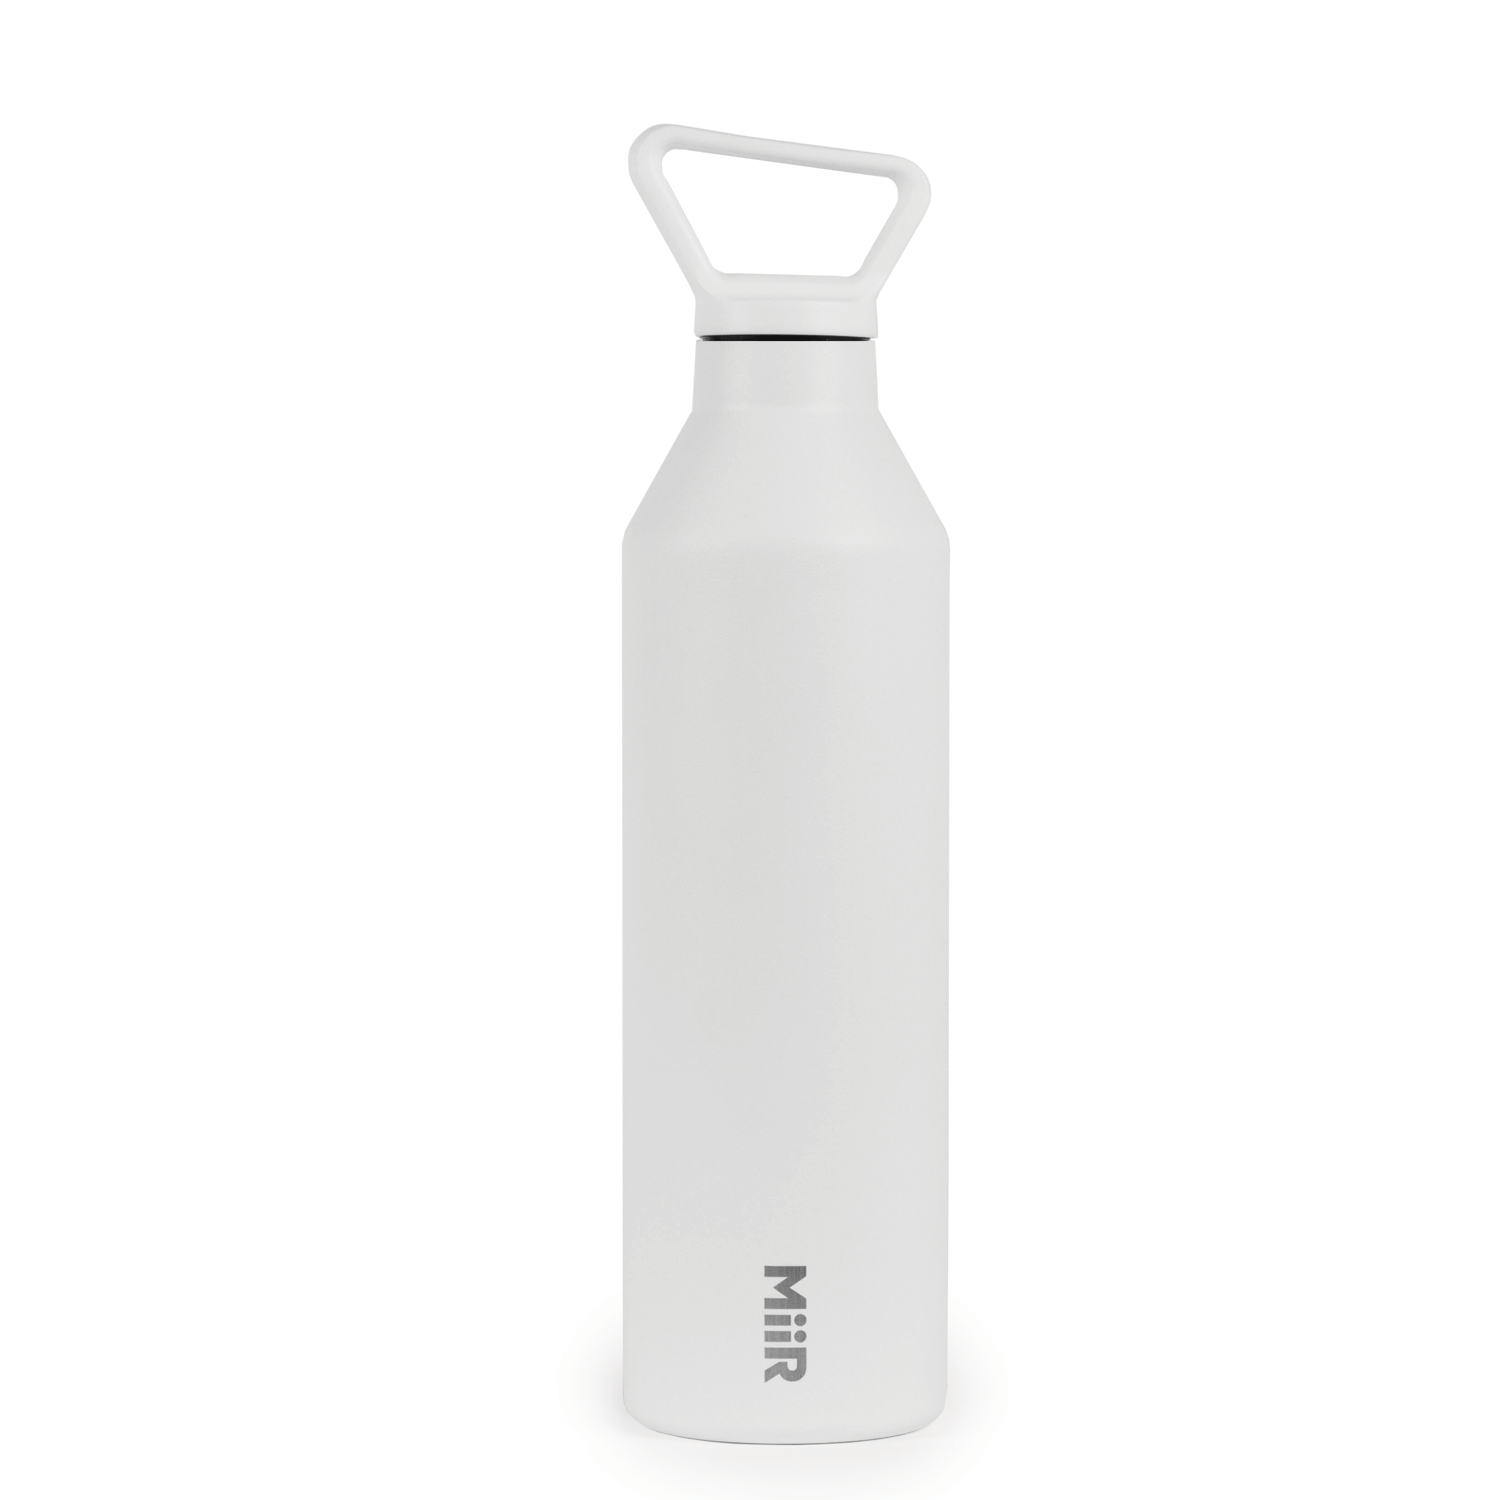 VI NM Bottle - White